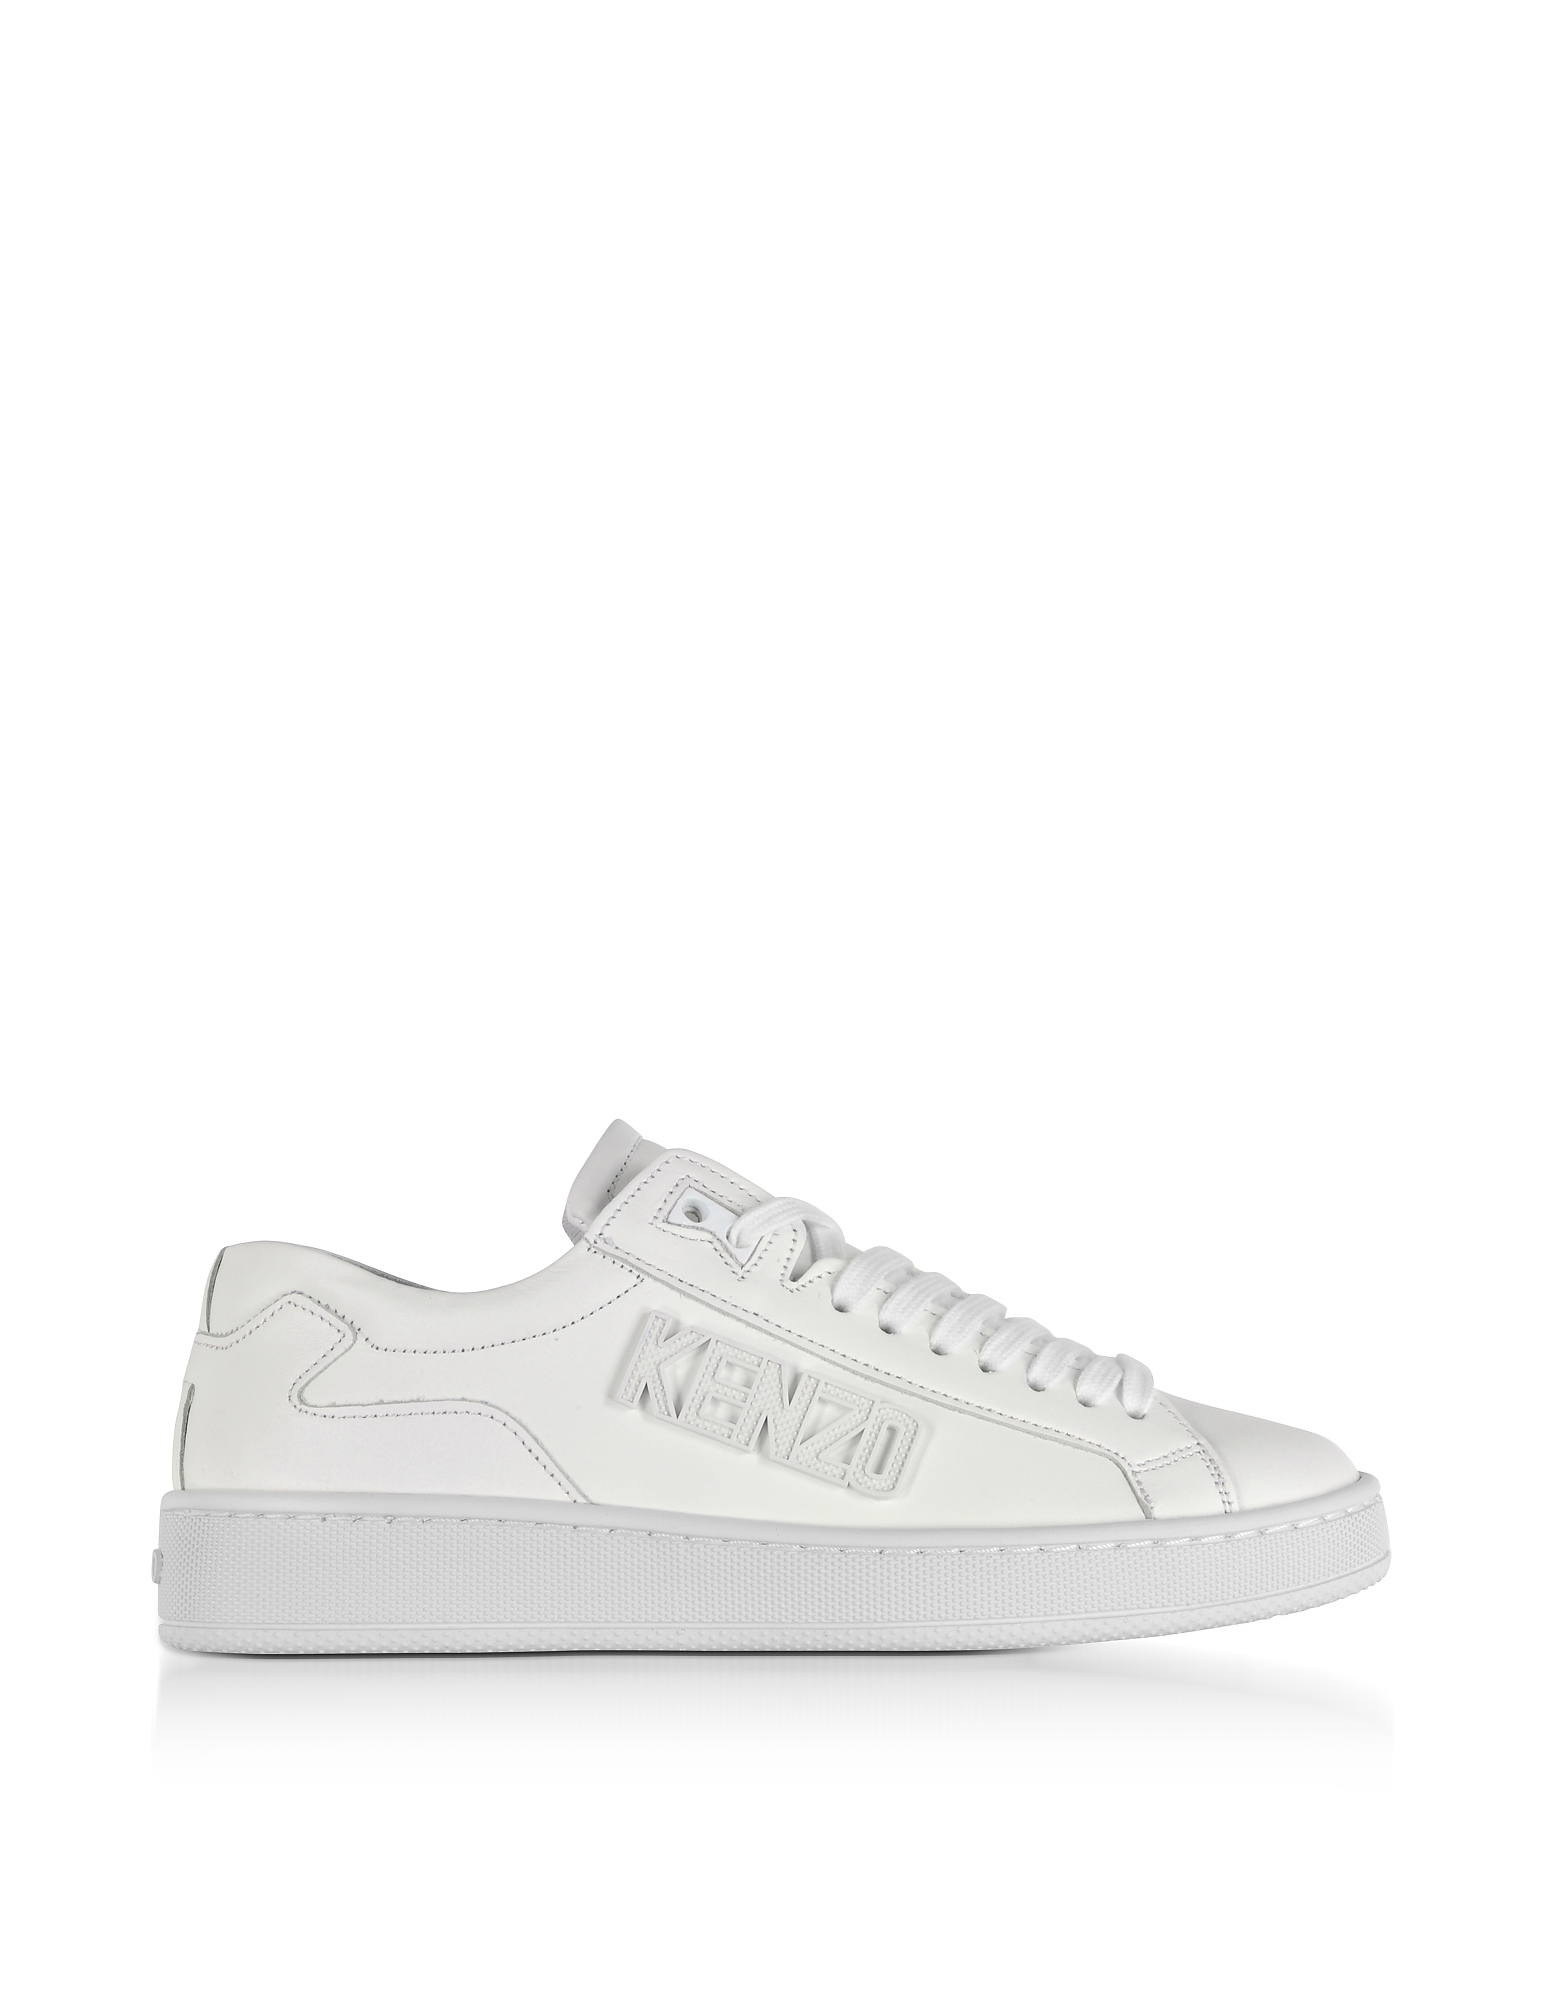 Kenzo Shoes, Tennix White Leather Low Top Sneakers